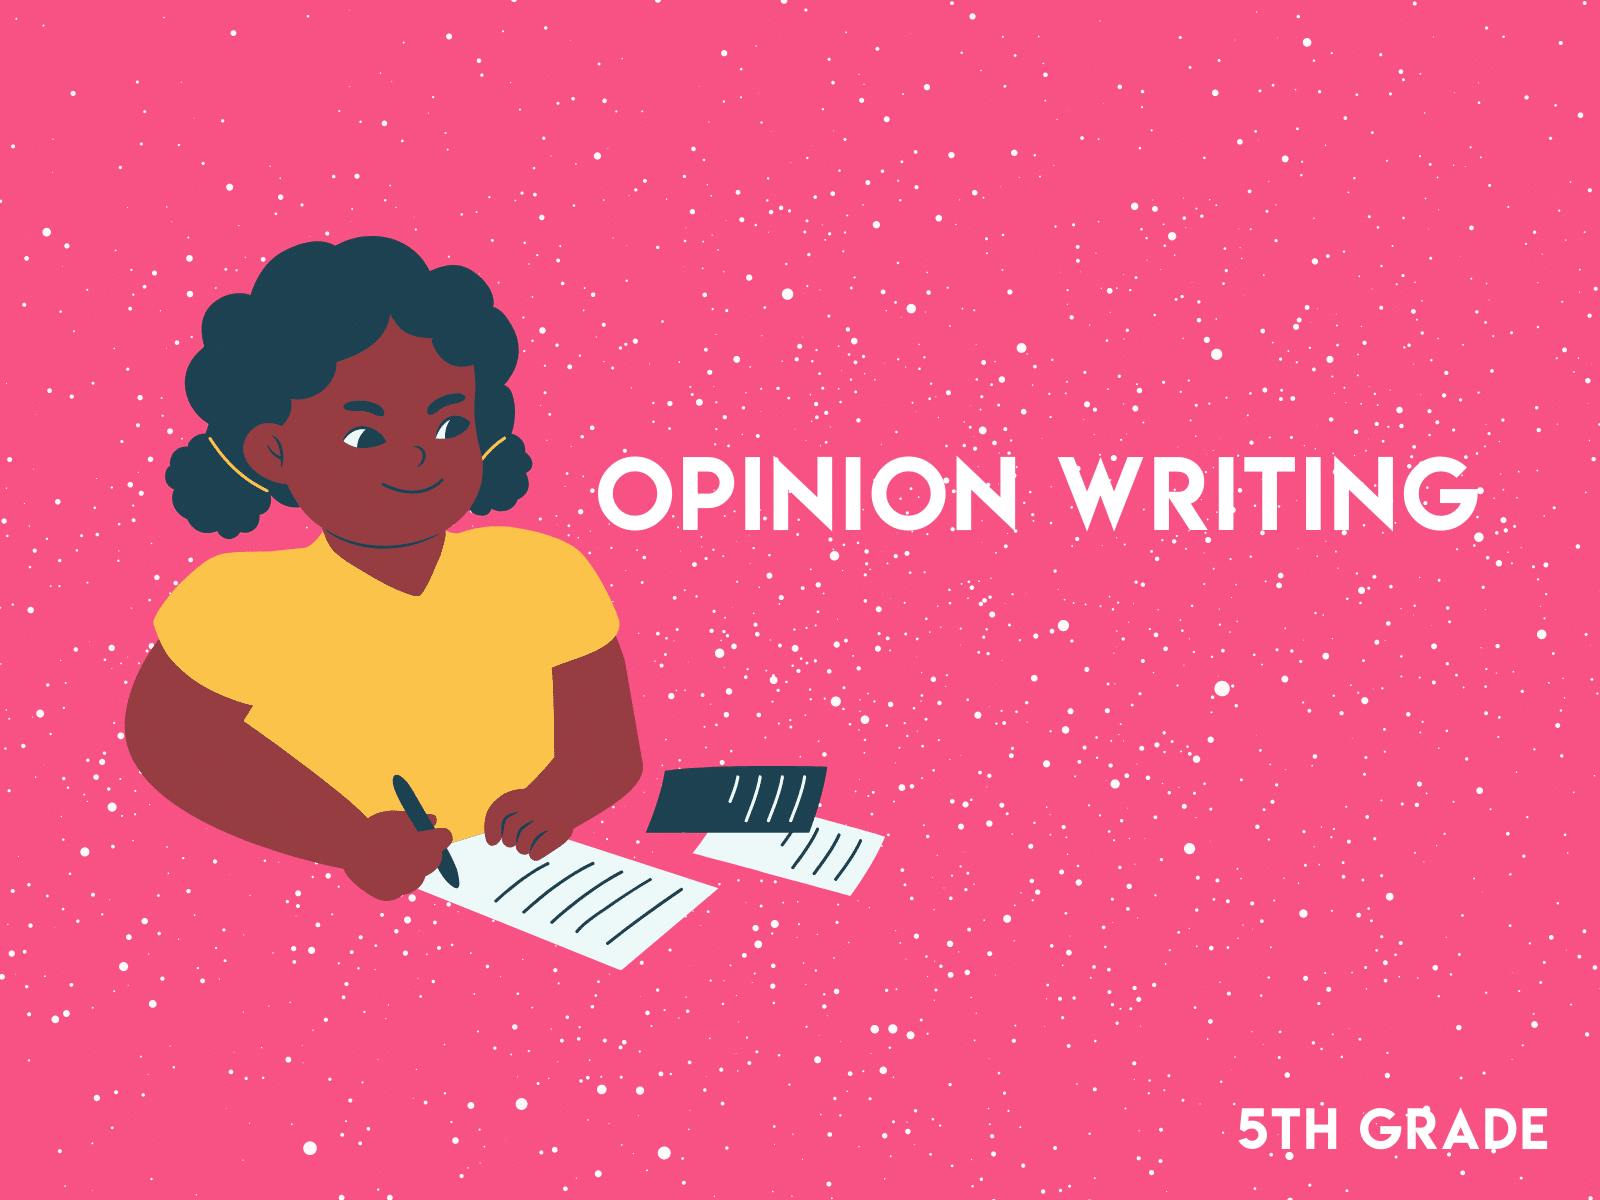 Opinion writing worksheet for fifth graders   Free learning resource